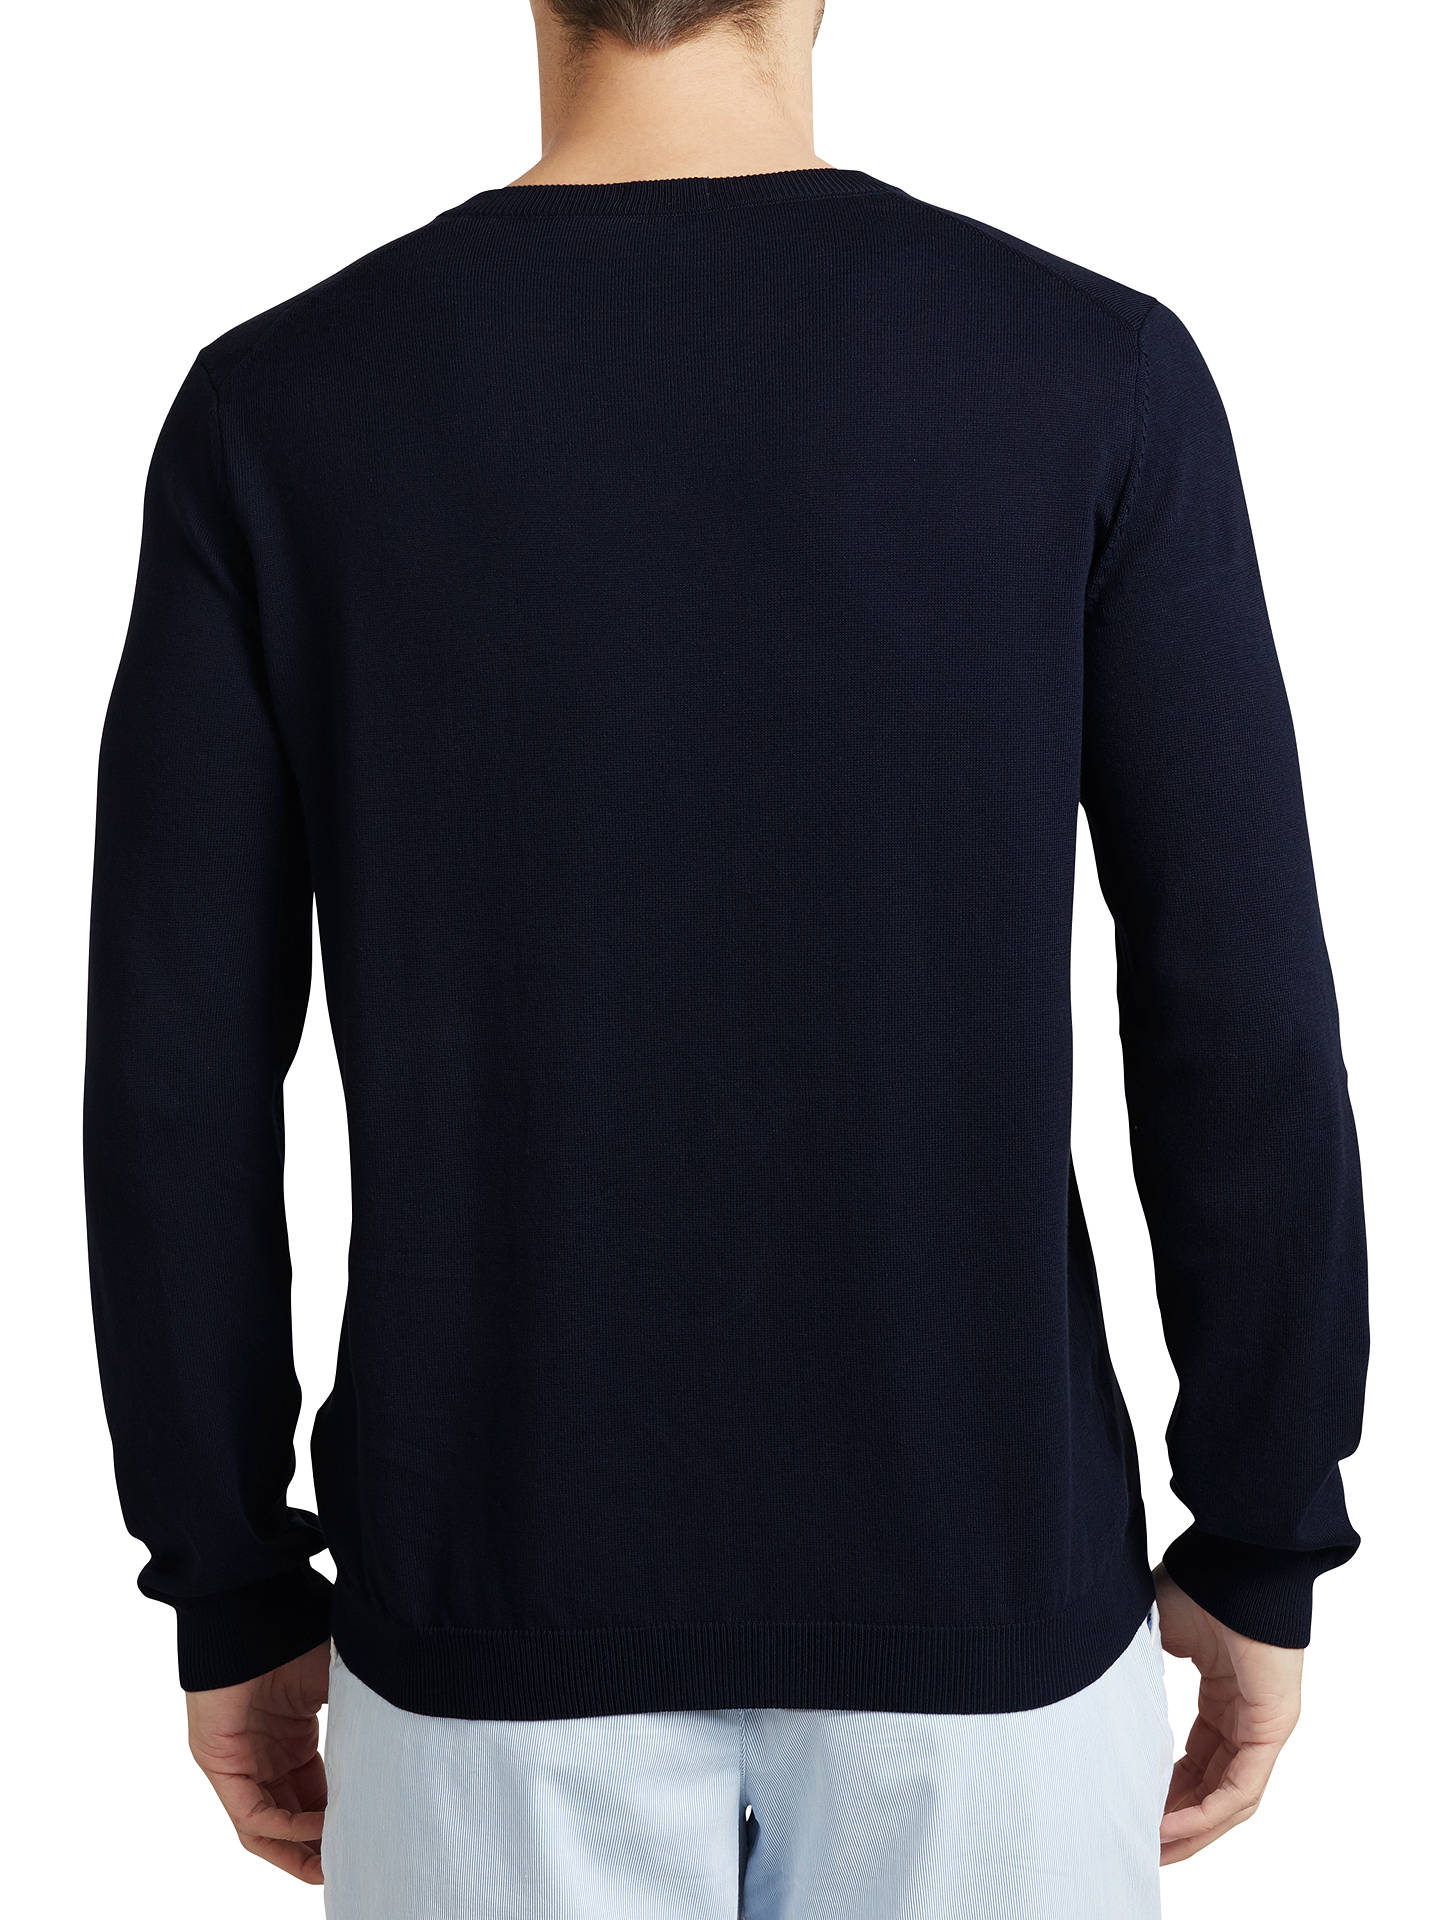 09e2182f7 ... Buy BOSS Green C-Carlton V-Neck Jumper, Navy, S Online at ...